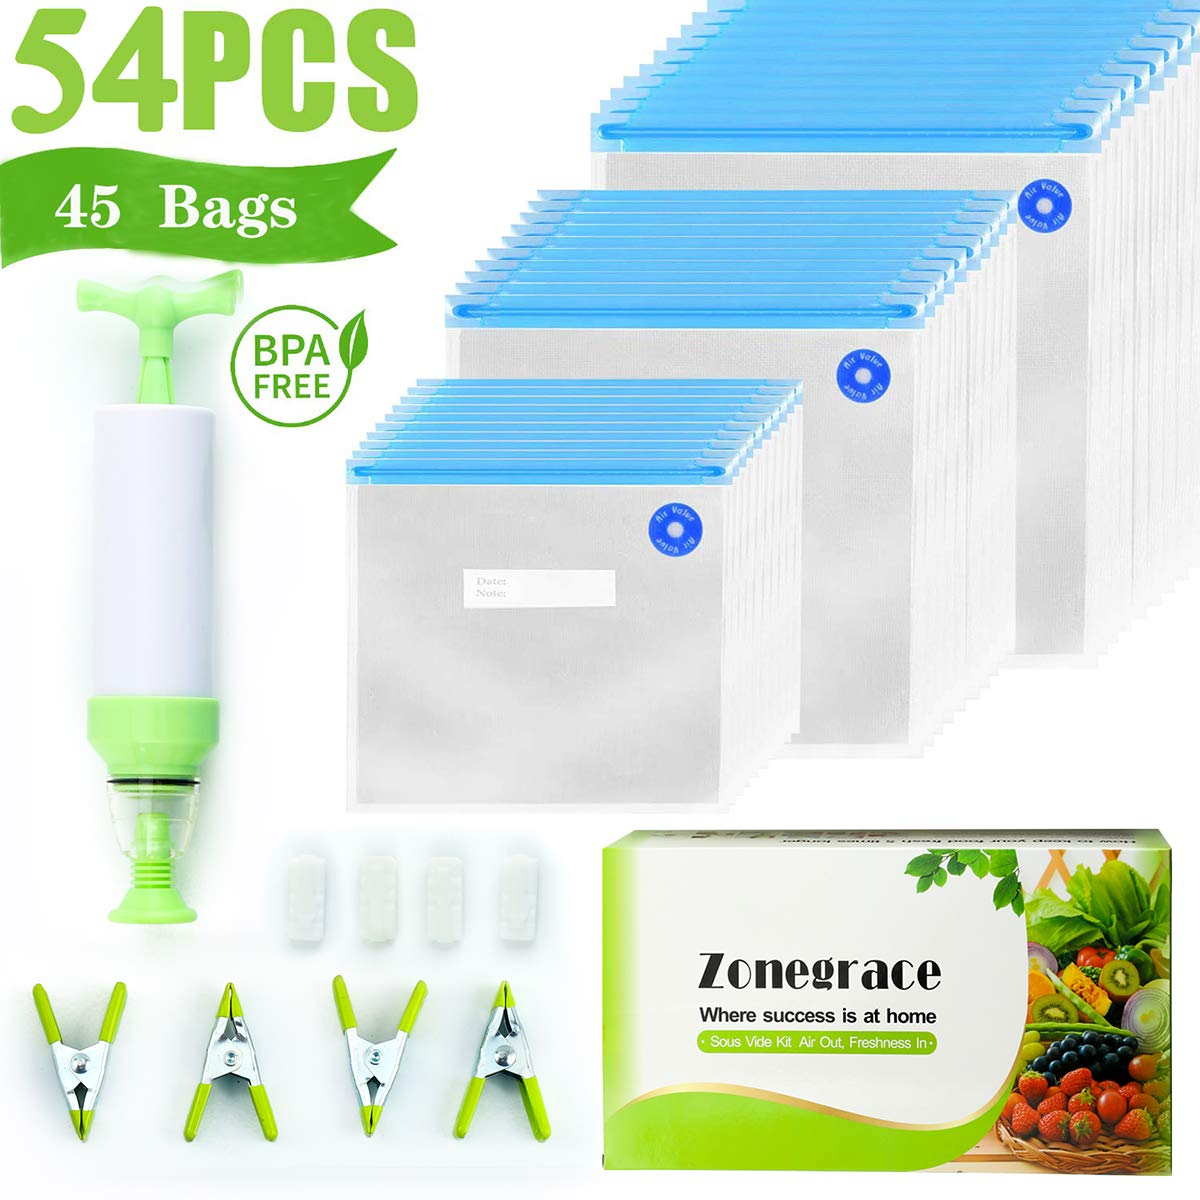 Zonegrace Sous Vide Bags 45 Reusable Vacuum Food Storage Bags for Anova and Joule Cookers - 3 sizes Sous Vide Bag Kit with Pump - 4 Sealing Clips - 4 Sous Vide Bag Clips for Food Storage and Sous Vide Cooking by Zonegrace